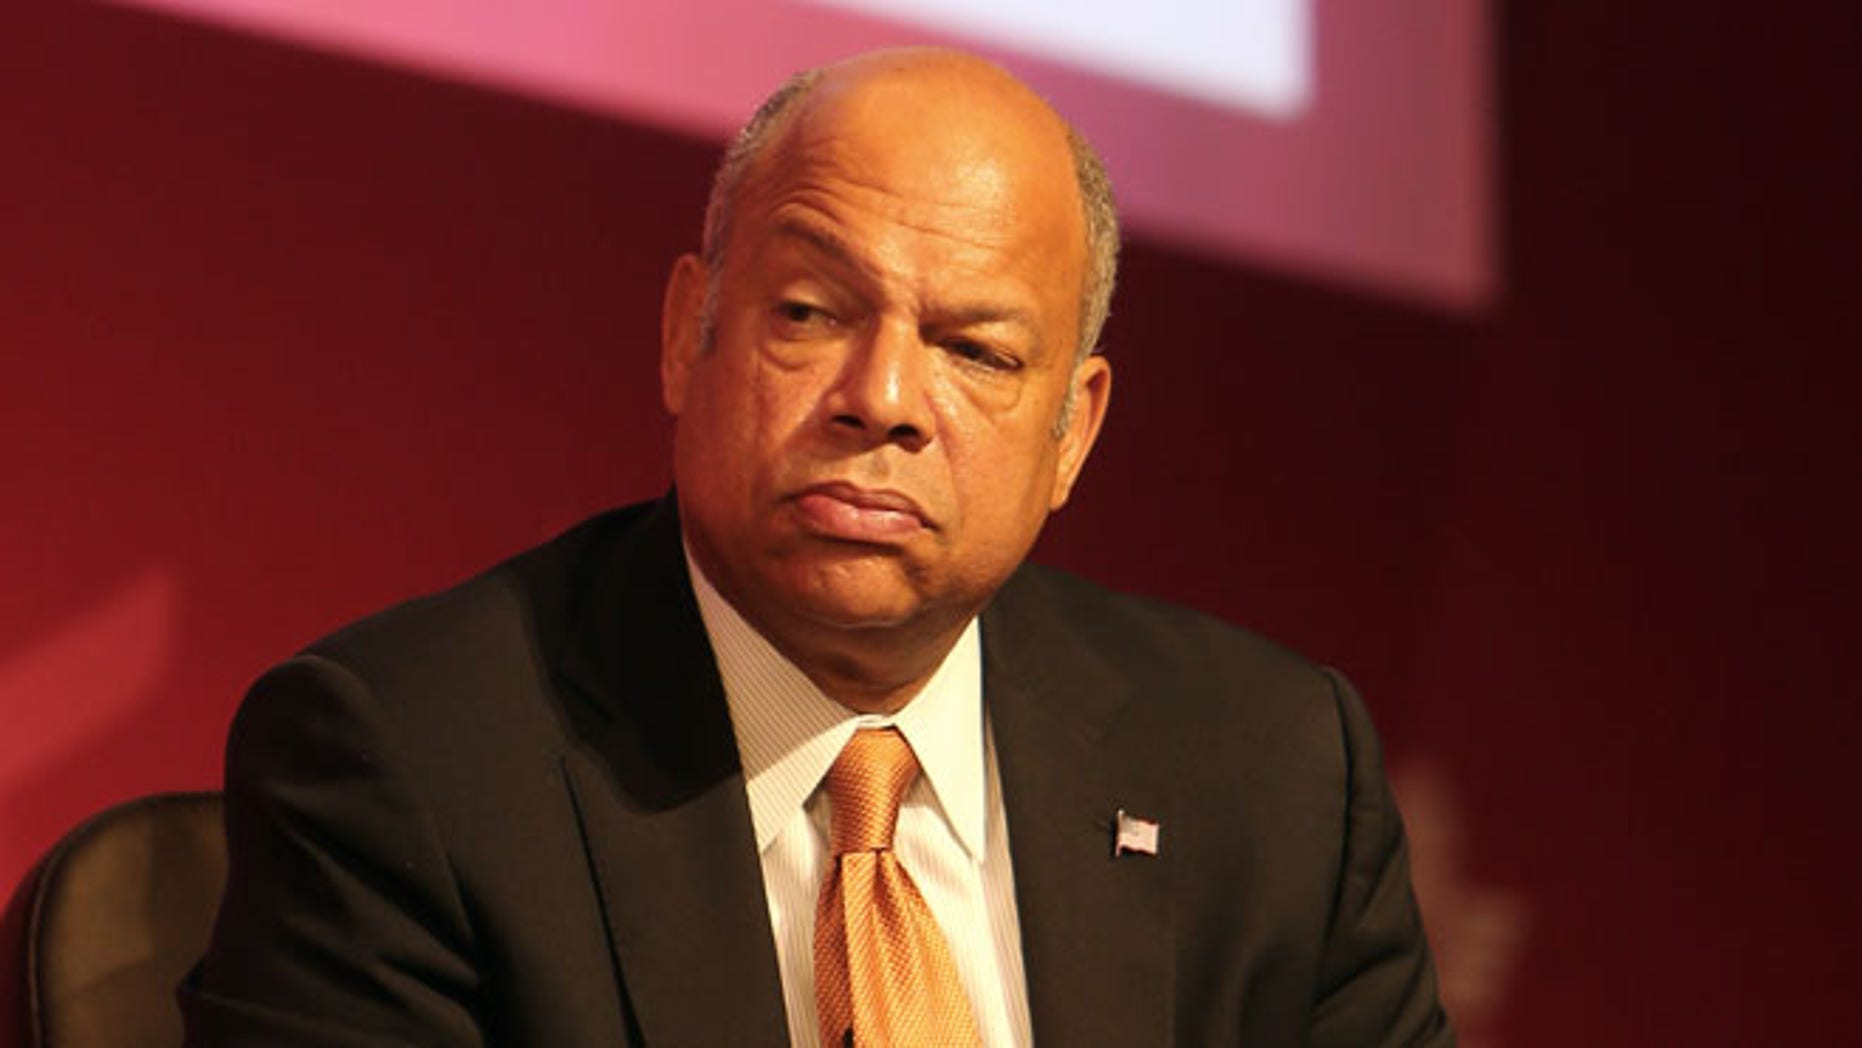 Jeh Johnson, U.S. Secretary of Homeland Security takes part in a panel discussion at the 70th International Air Transport Association (IATA) in Doha, Qatar, Tuesday, June 3, 2014.